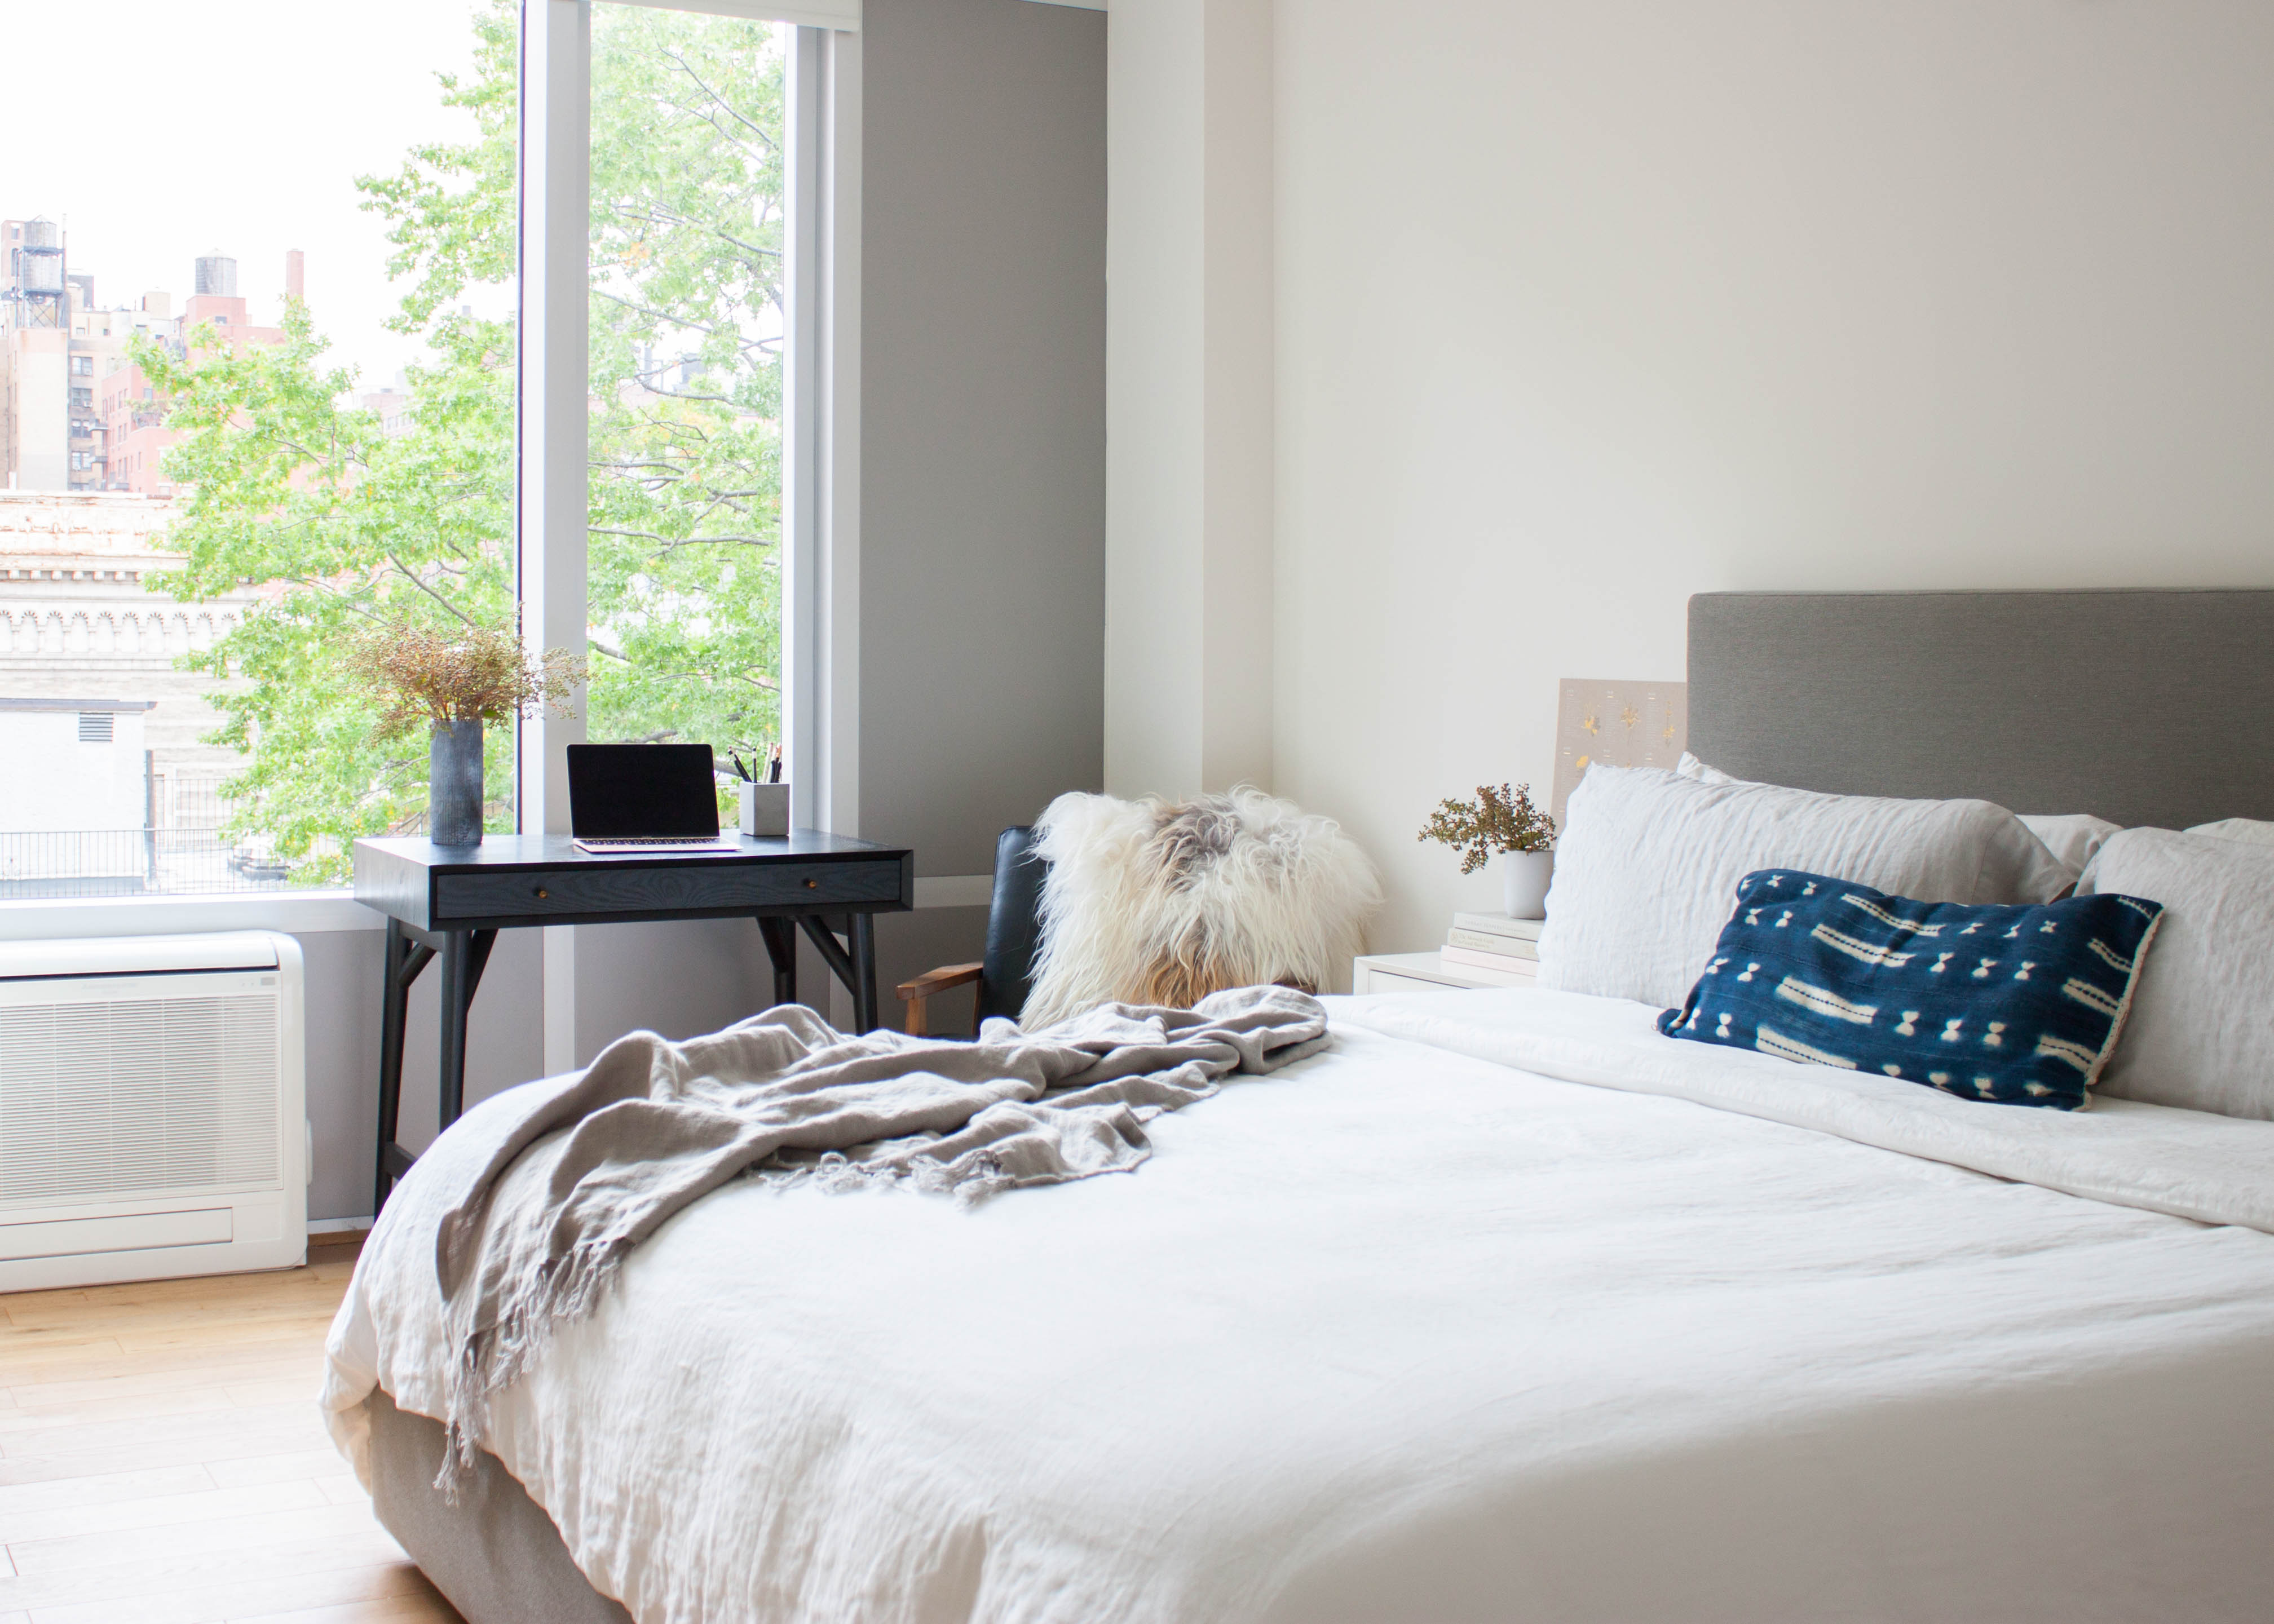 10 Ways to Start Your Day   Apartment Therapy